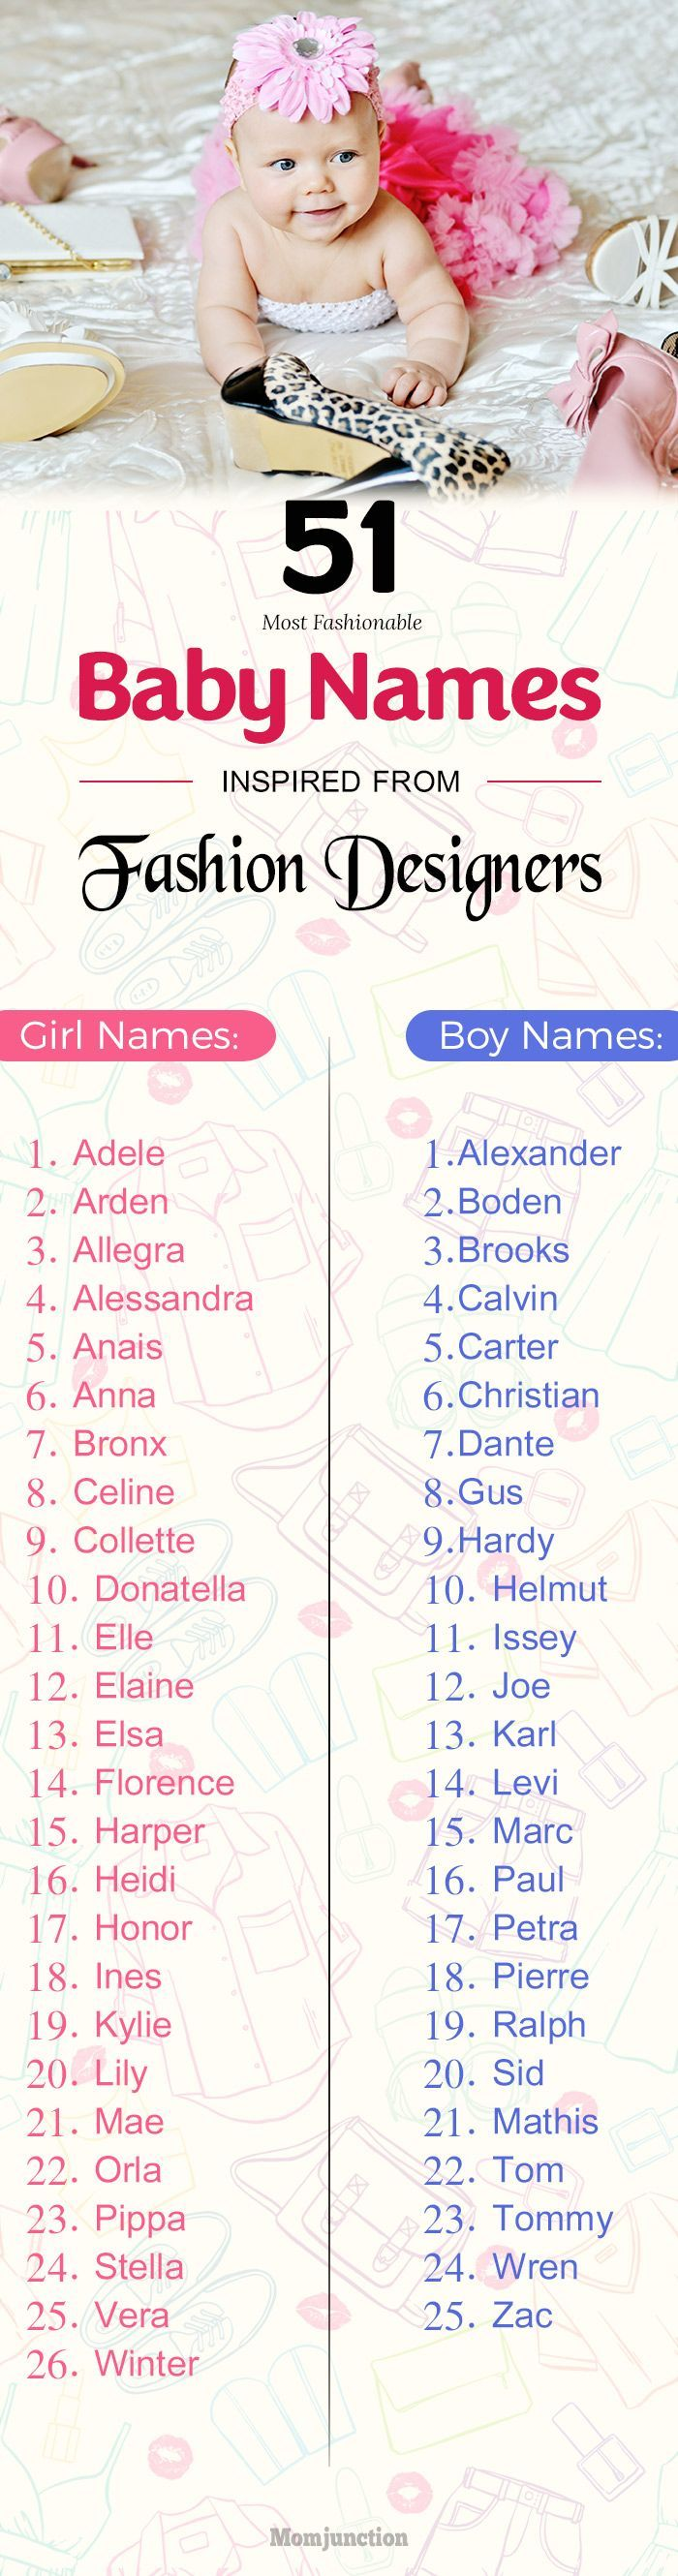 400+ best images about Baby Name Obsessed on Pinterest ...